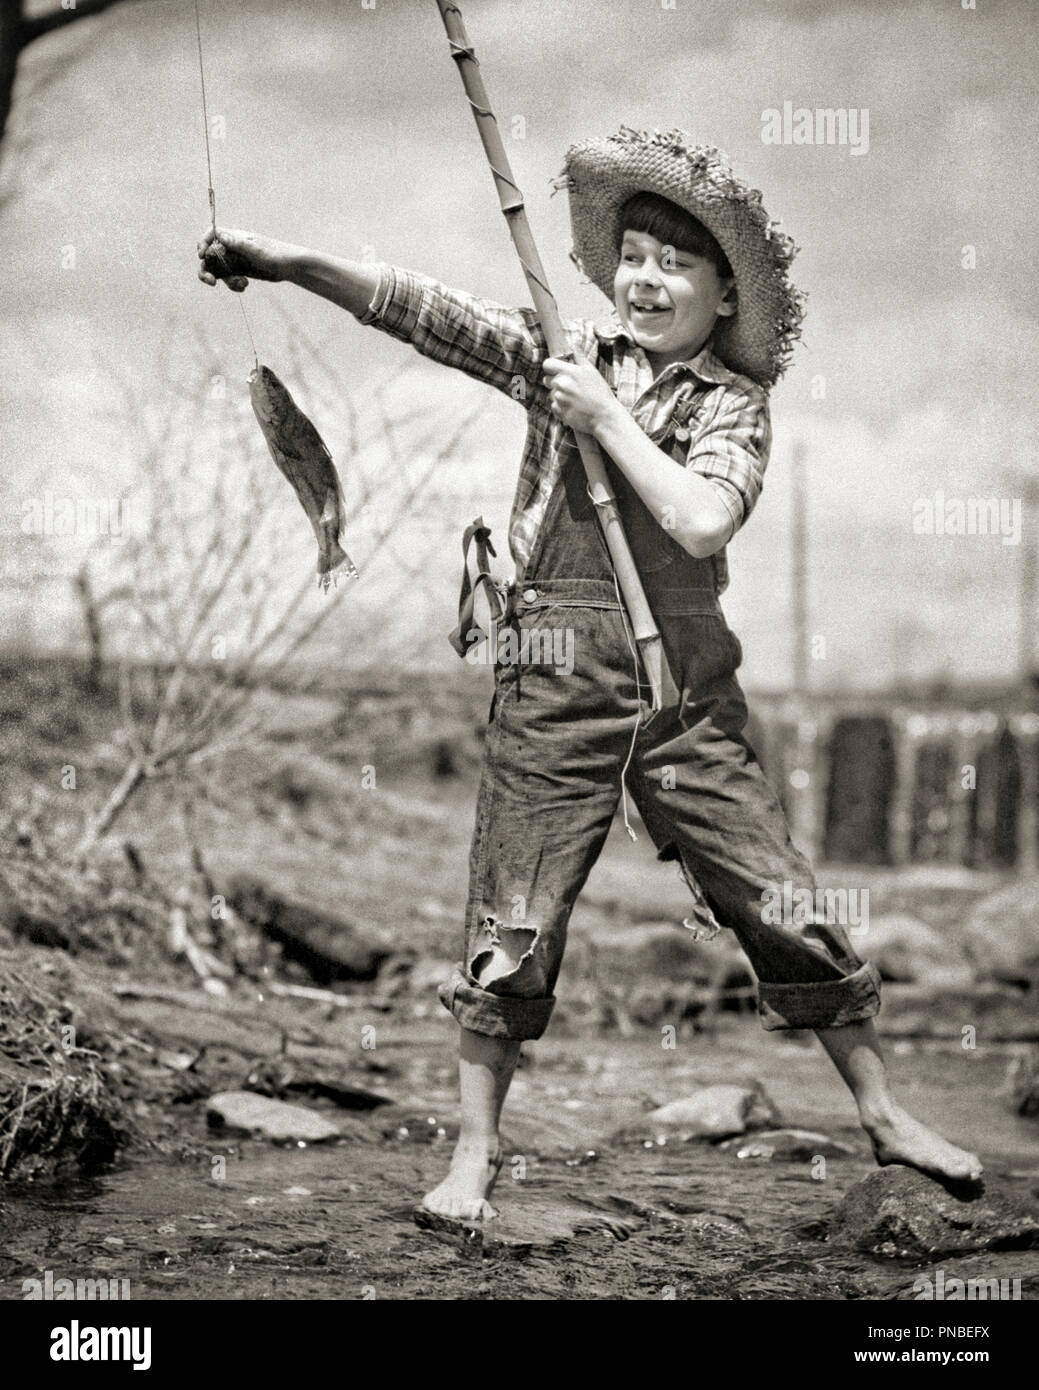 1940s-1950s-barefoot-boy-in-overalls-in-